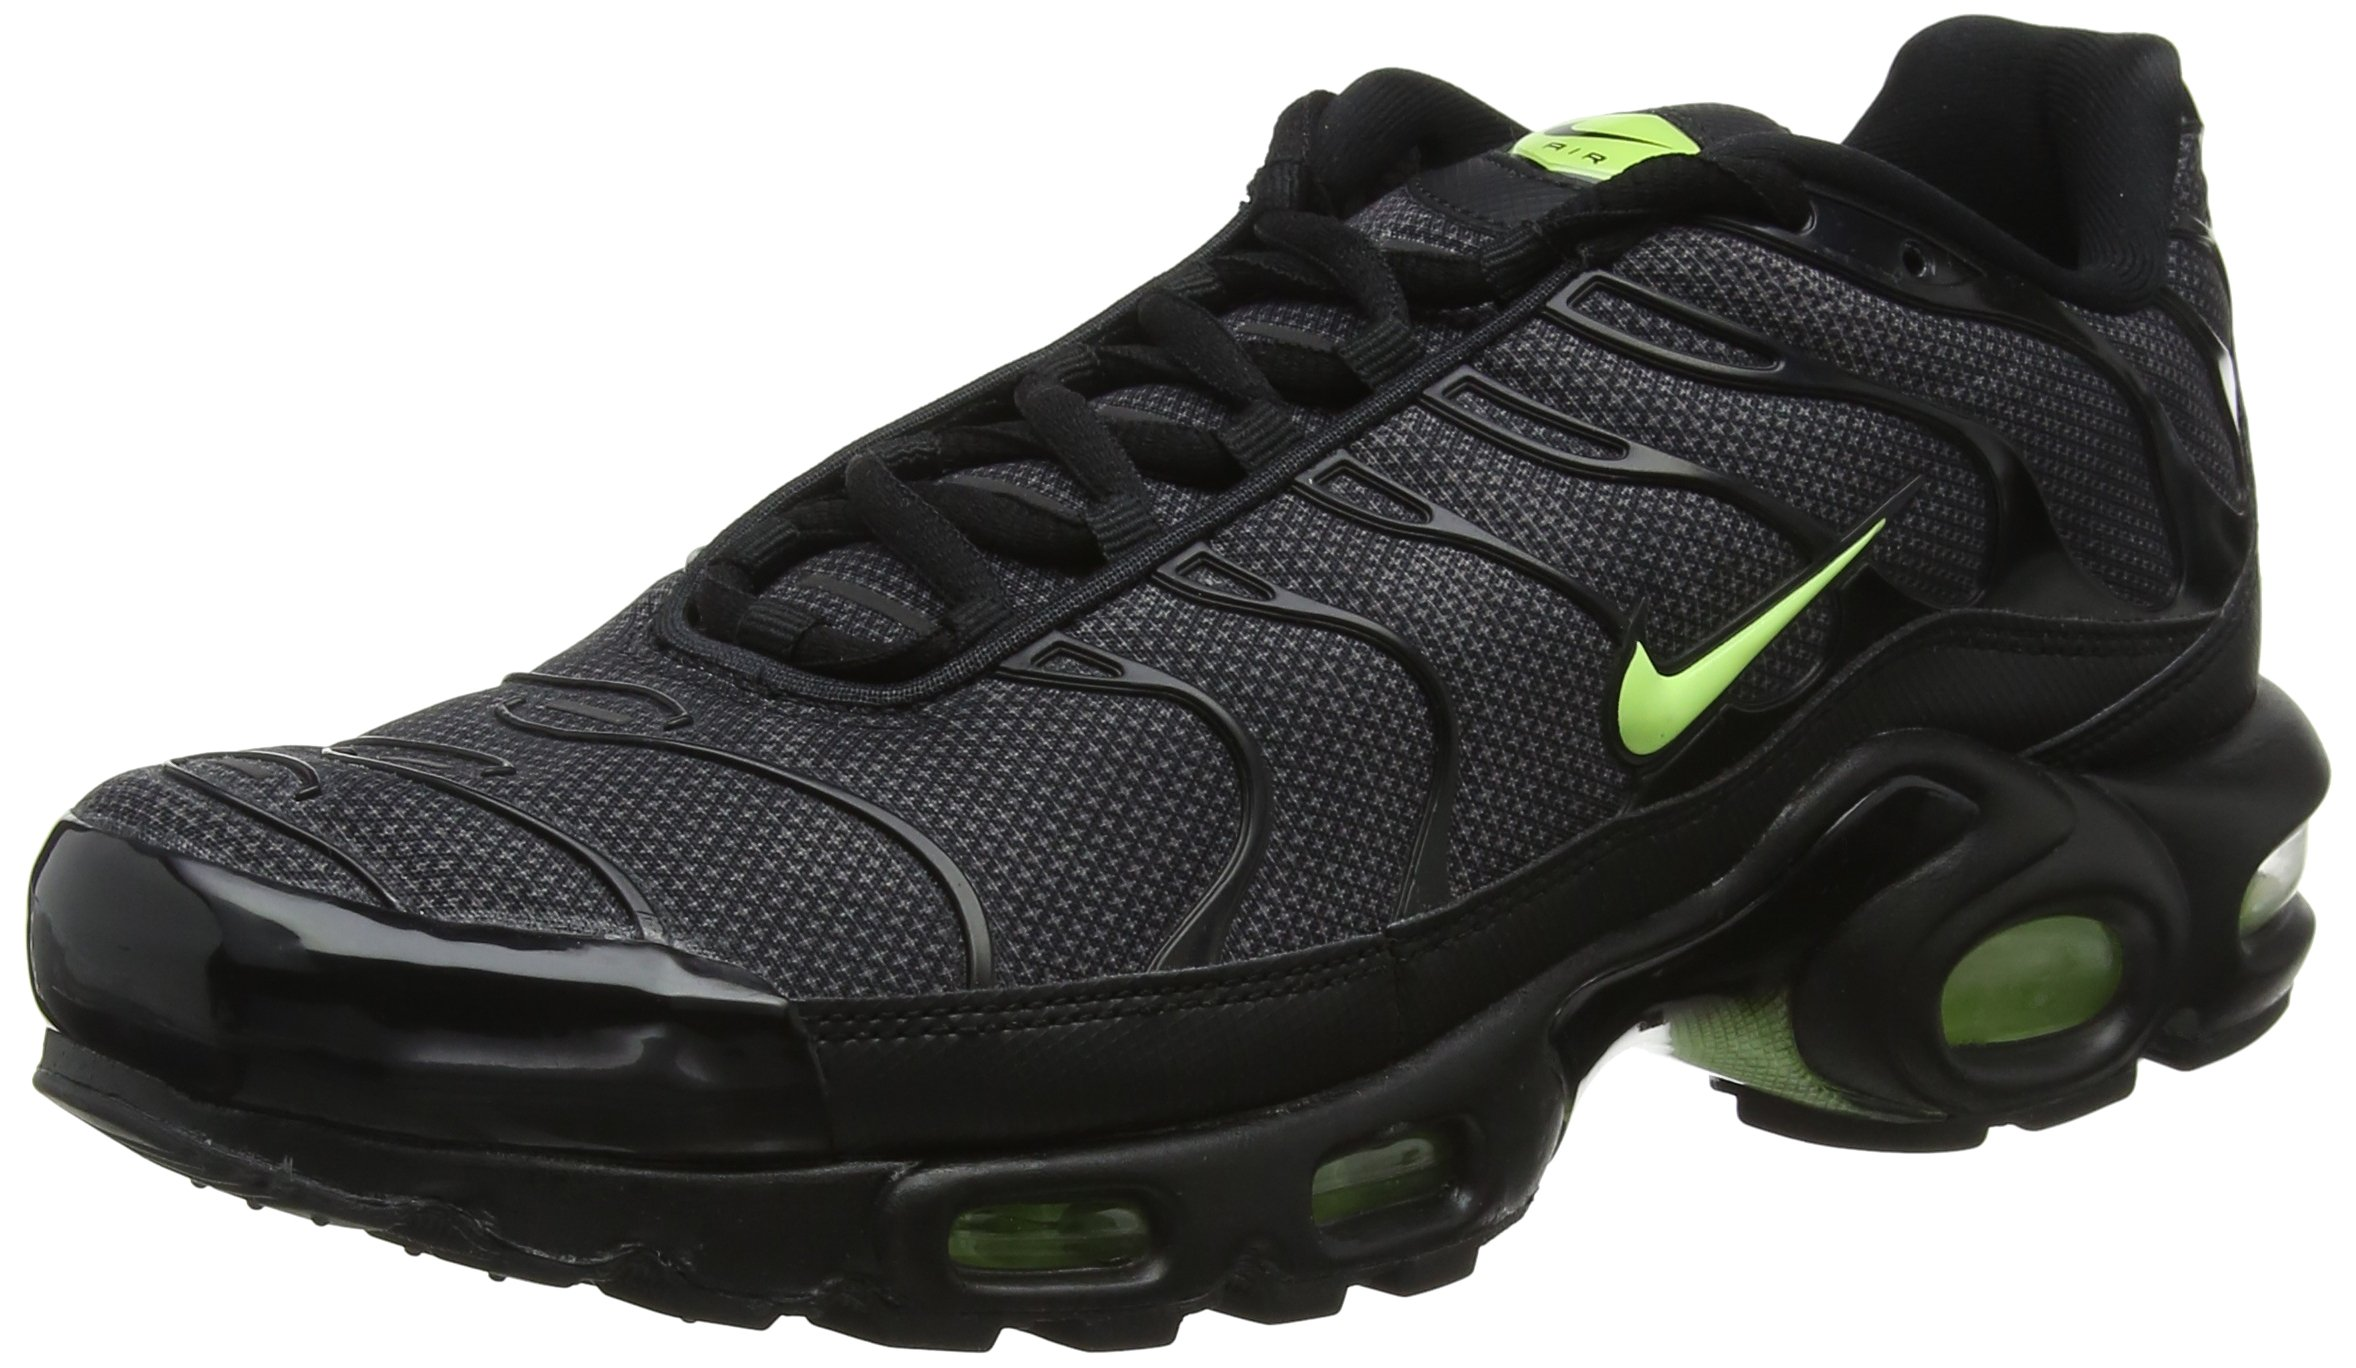 best loved 0db58 909c9 Nike Air Max Plus SE Special Edition TN Sneaker Sport Shoes Black/Gray/neon  Rarity, EU Shoe Size:EUR 42.5